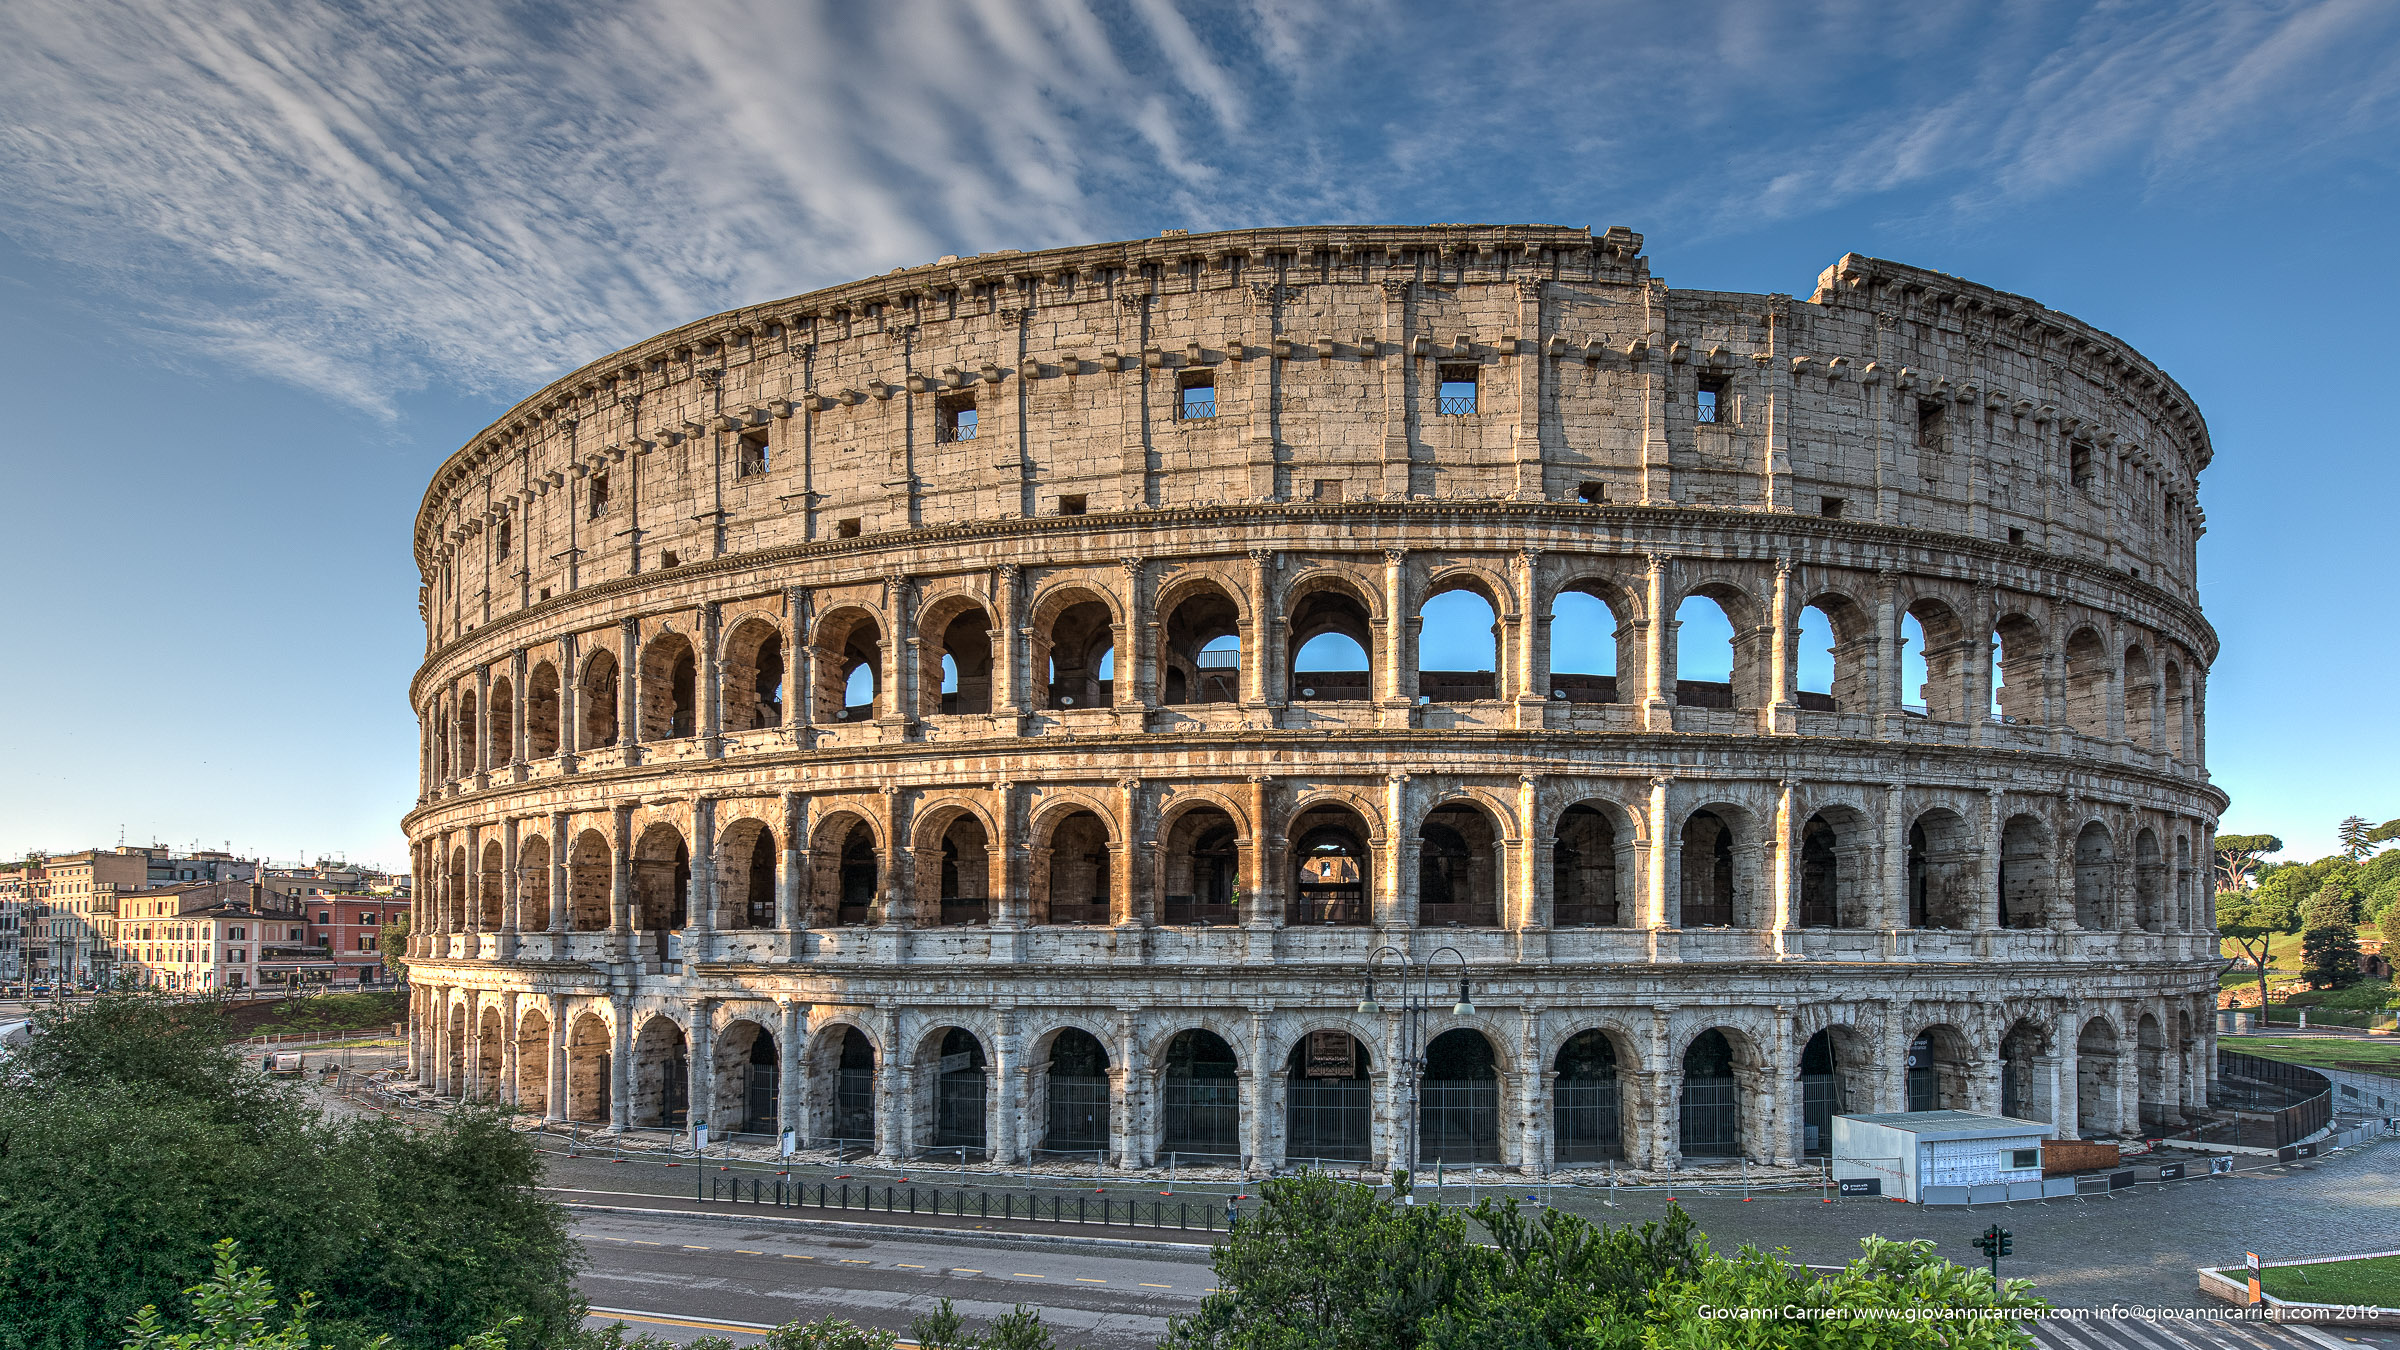 Flavian Amphitheater, called the Colosseum, in the morning